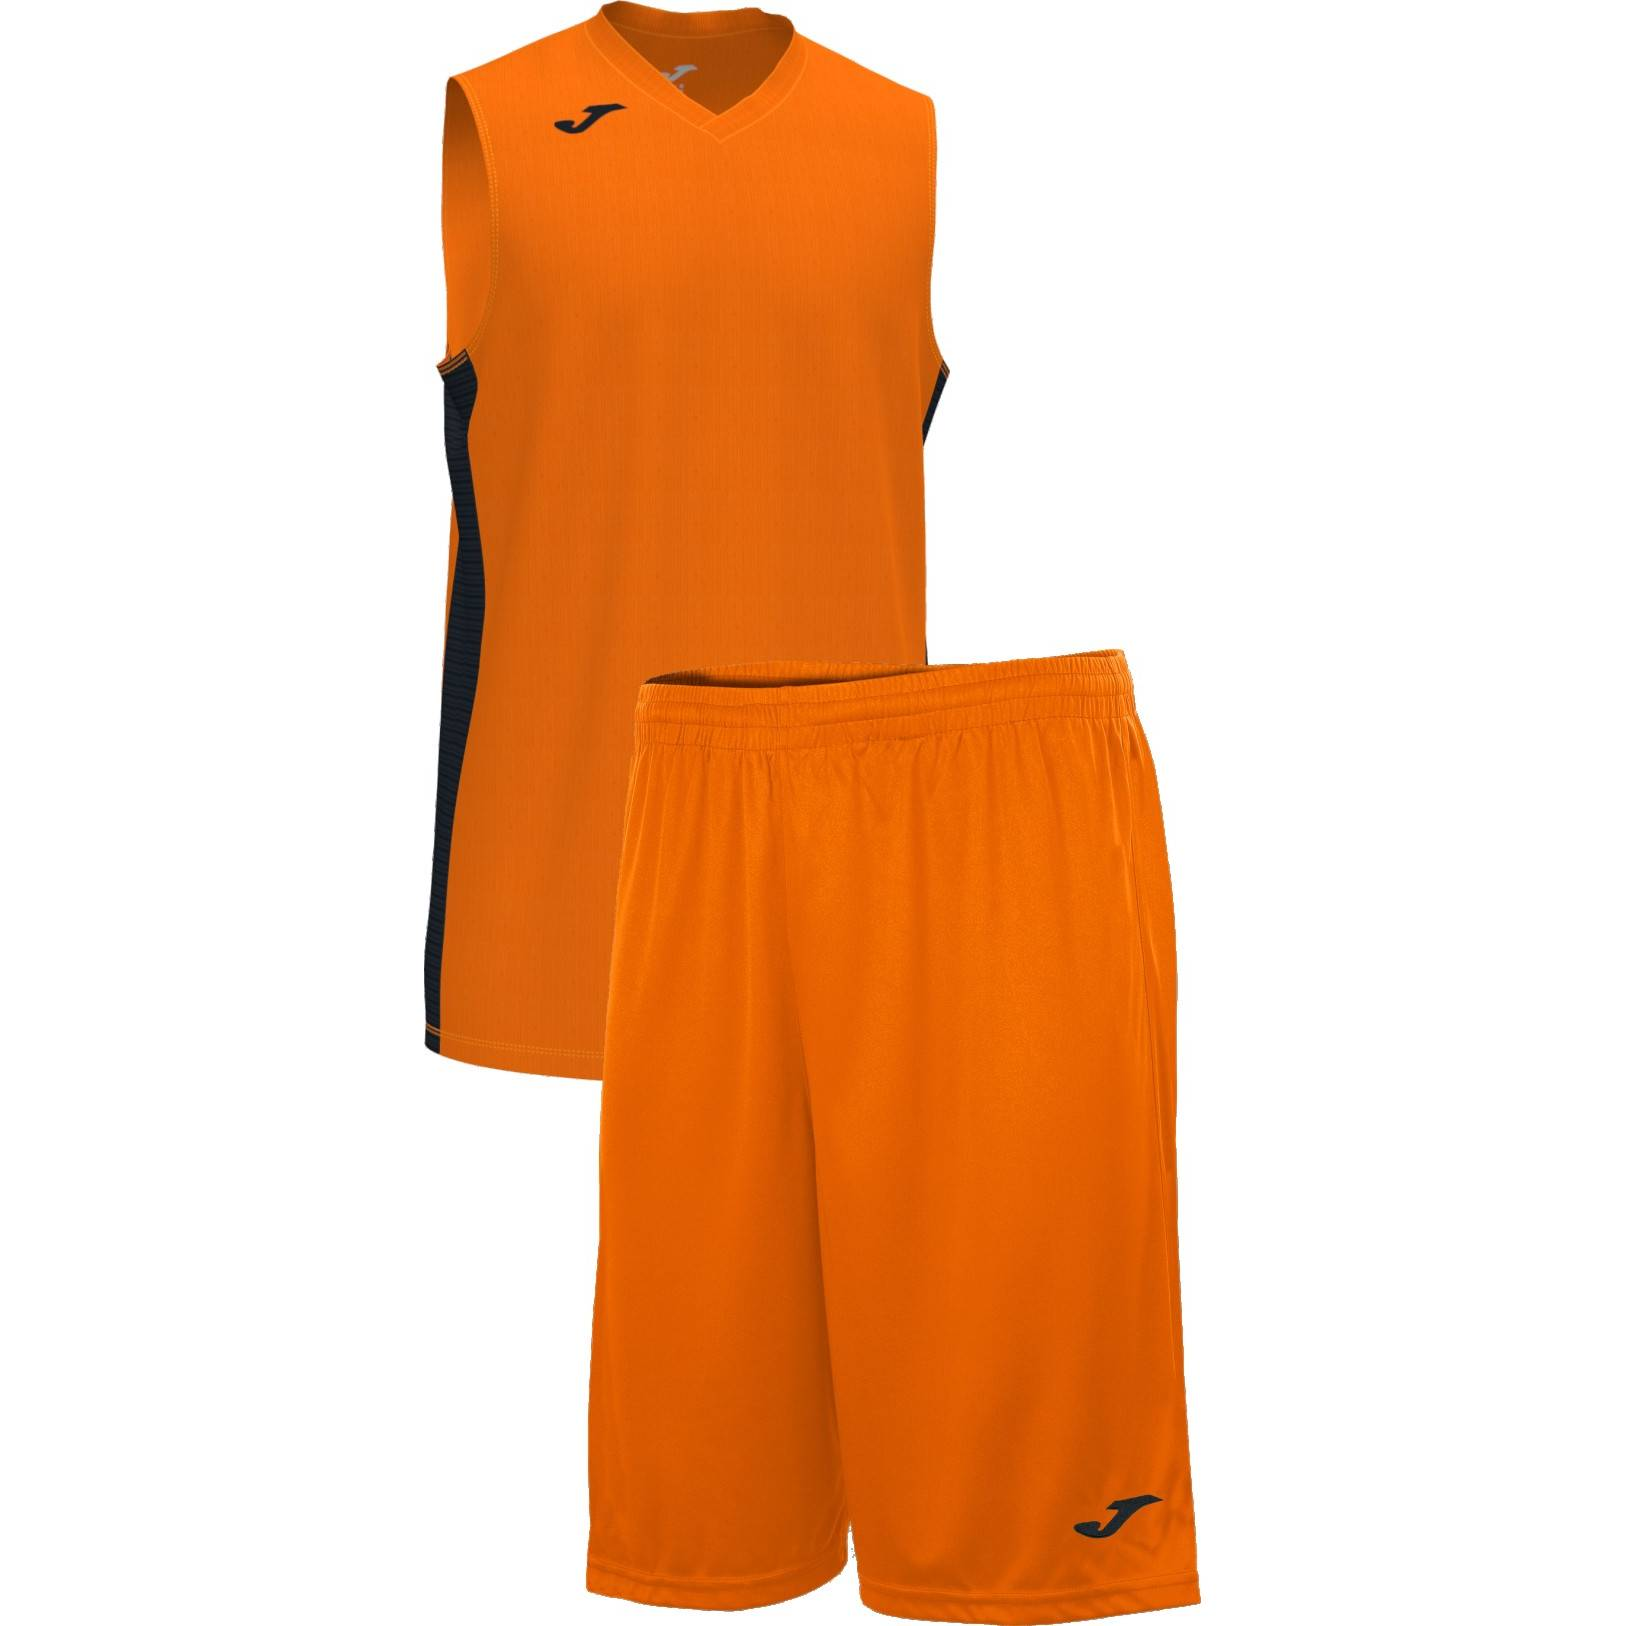 Teamwear - Joma Cancha Sleeveless  & Nobel Long Shorts Set - Orange/Black - JO-101573-881-101648-Black